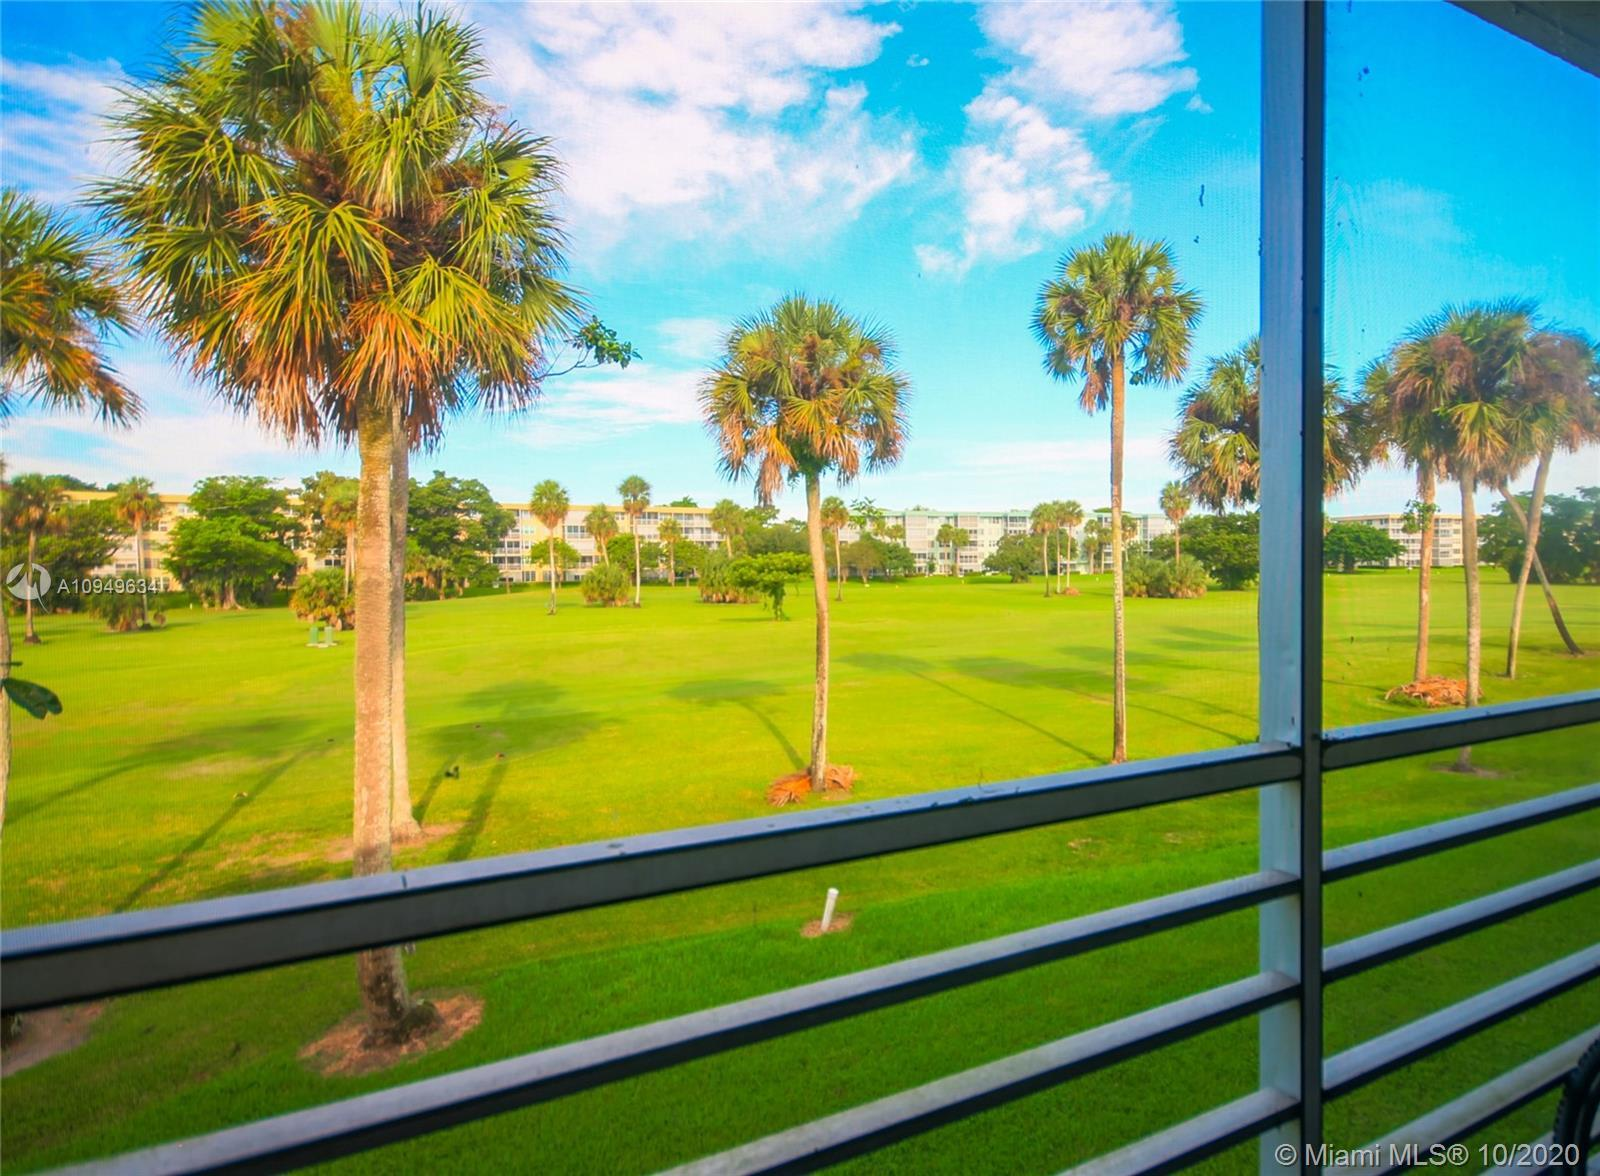 Exclusive Golf course unit at Palm Aire , lange apartment seating over nice golf course .. just get